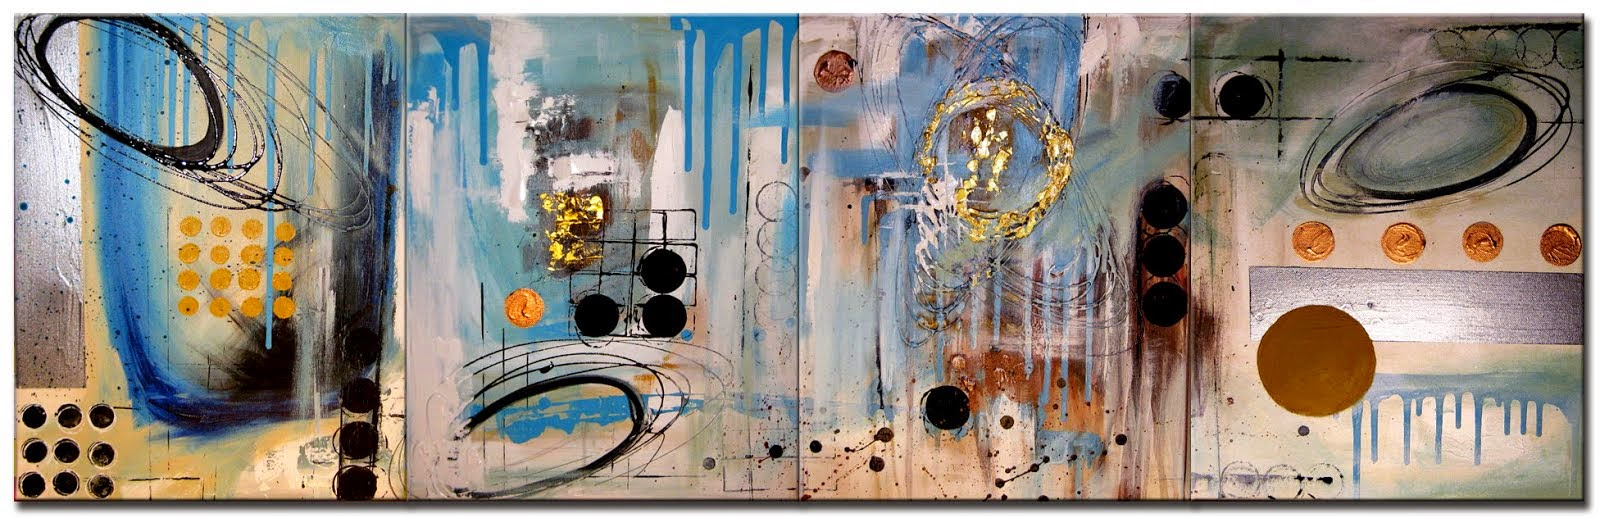 "Abstract Painting ""The Big Dream"" by Artist Dora Woodrum"